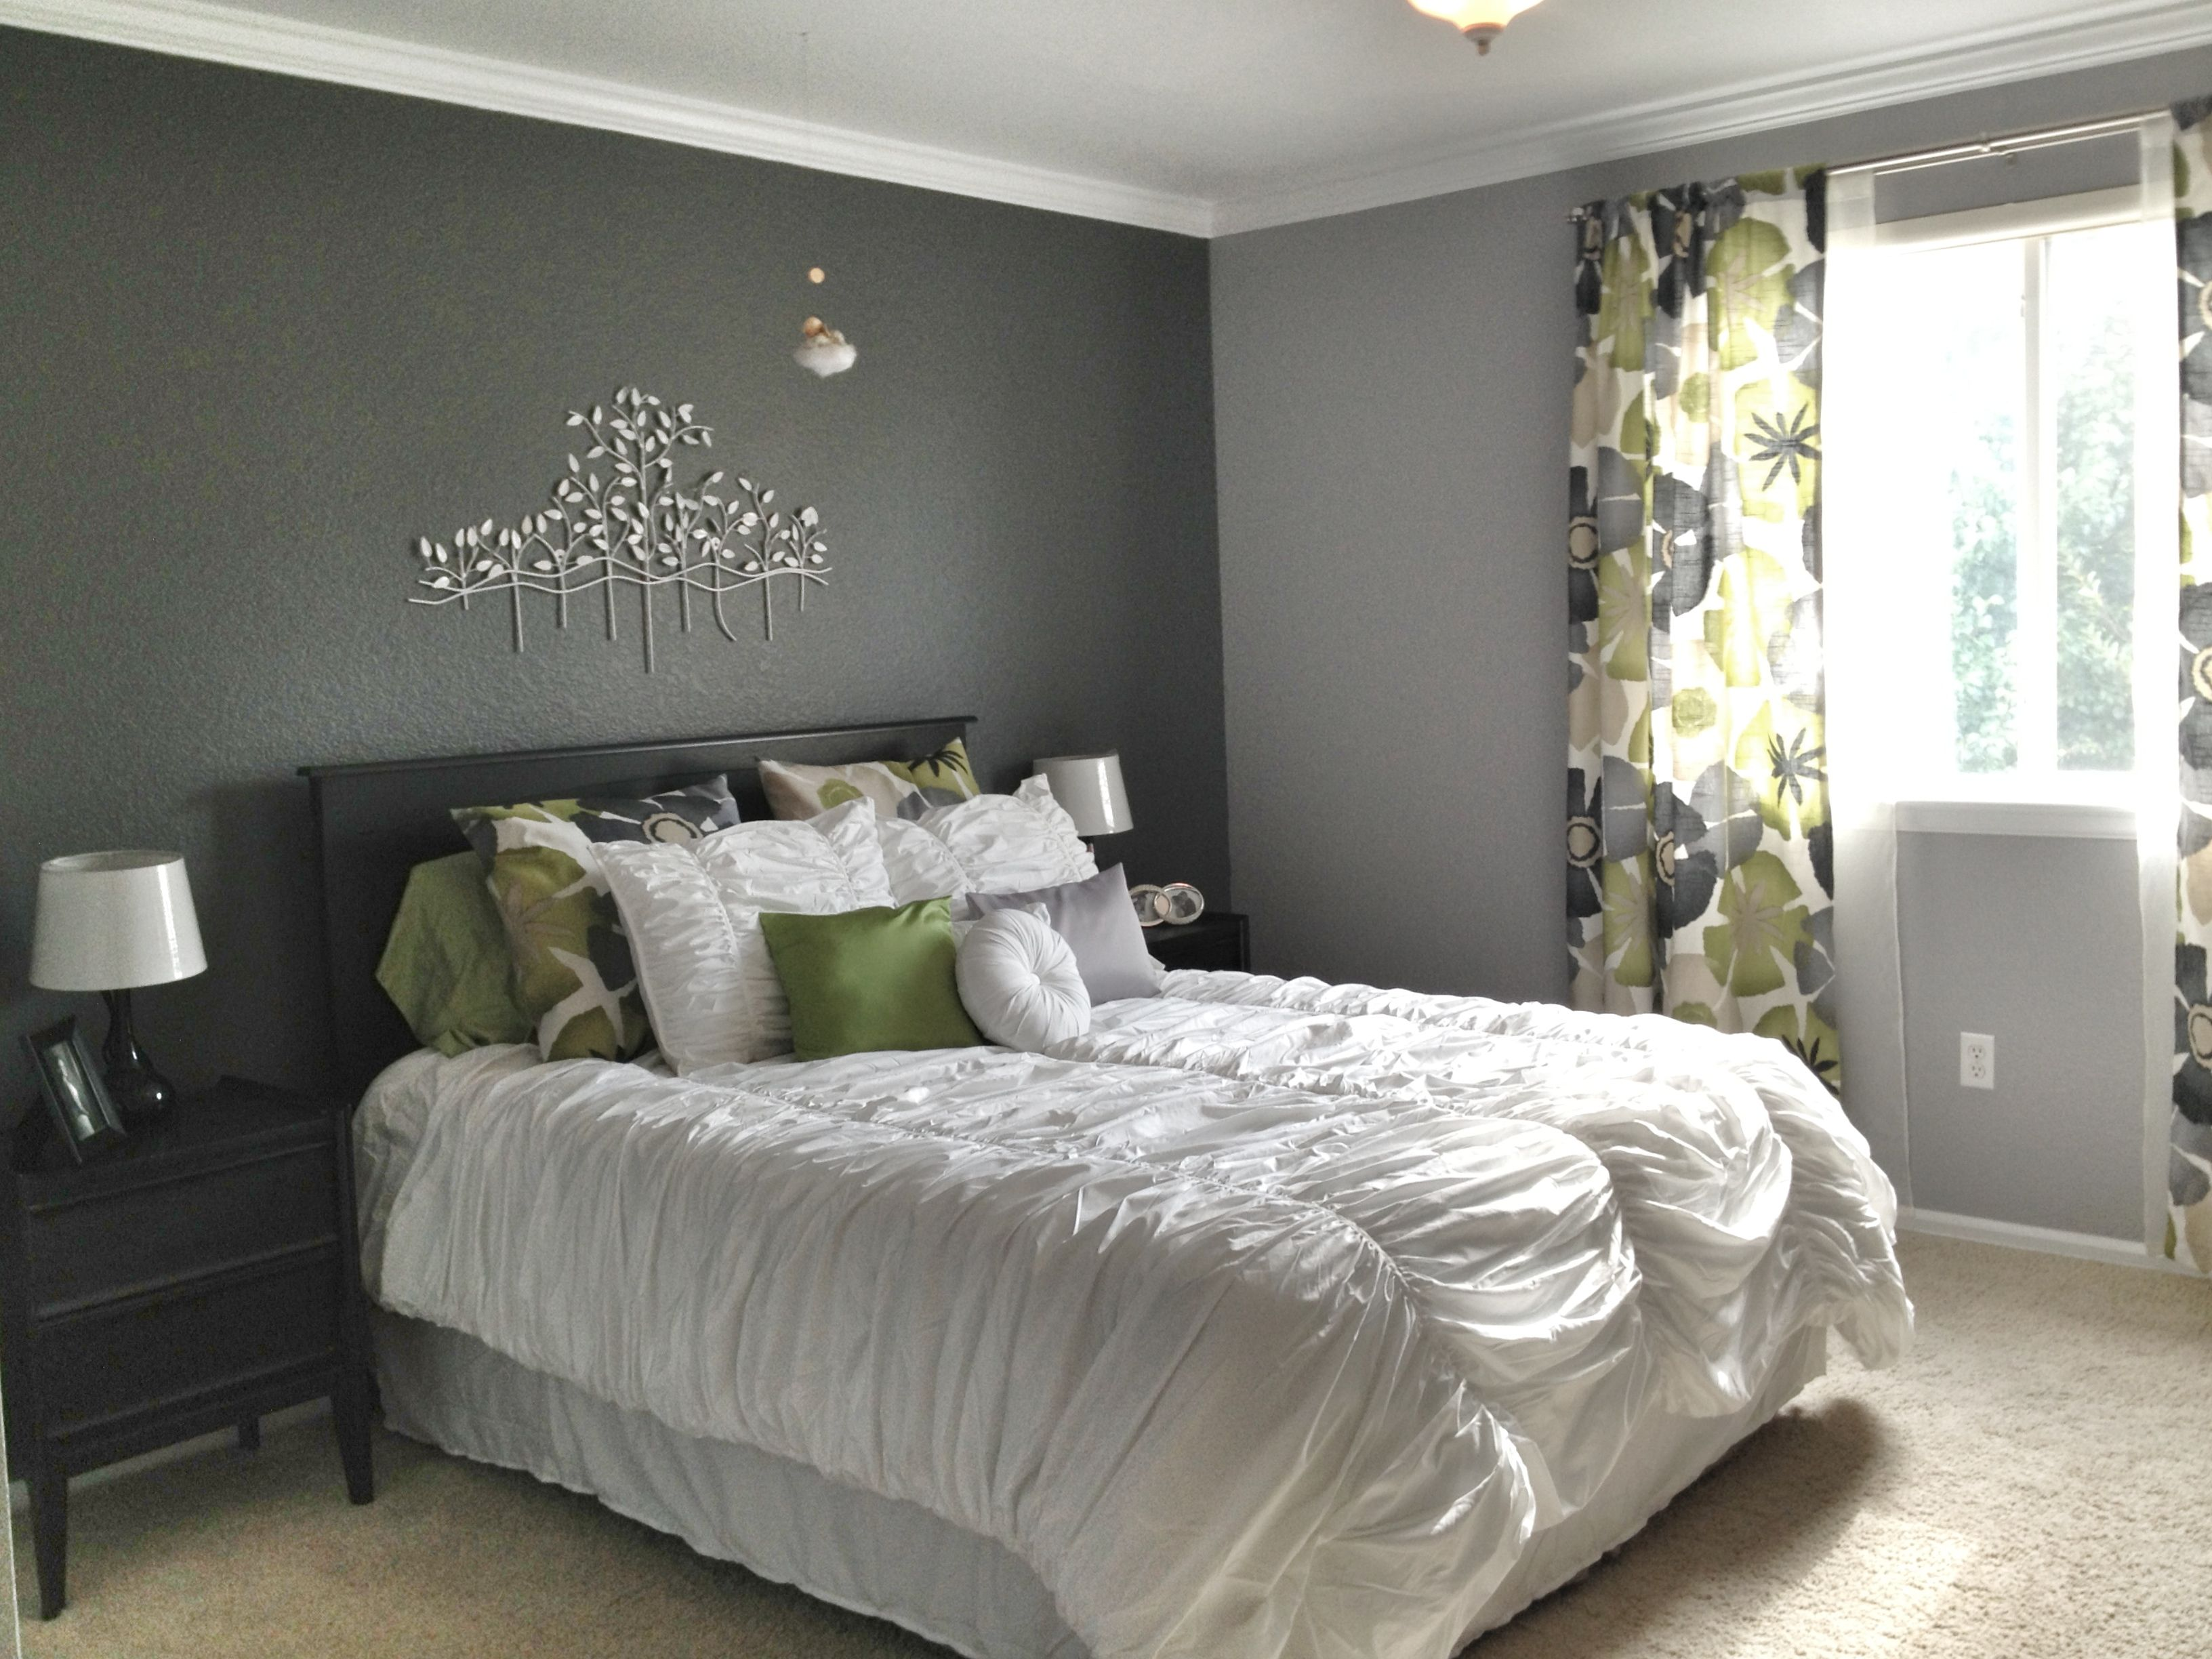 Accent Wall Ideas Walls Are Functional Parts Of Our Home Or Office But They Can Also Gray Accent Wall Bedroom Grey Bedroom Design Master Bedroom Wall Decor